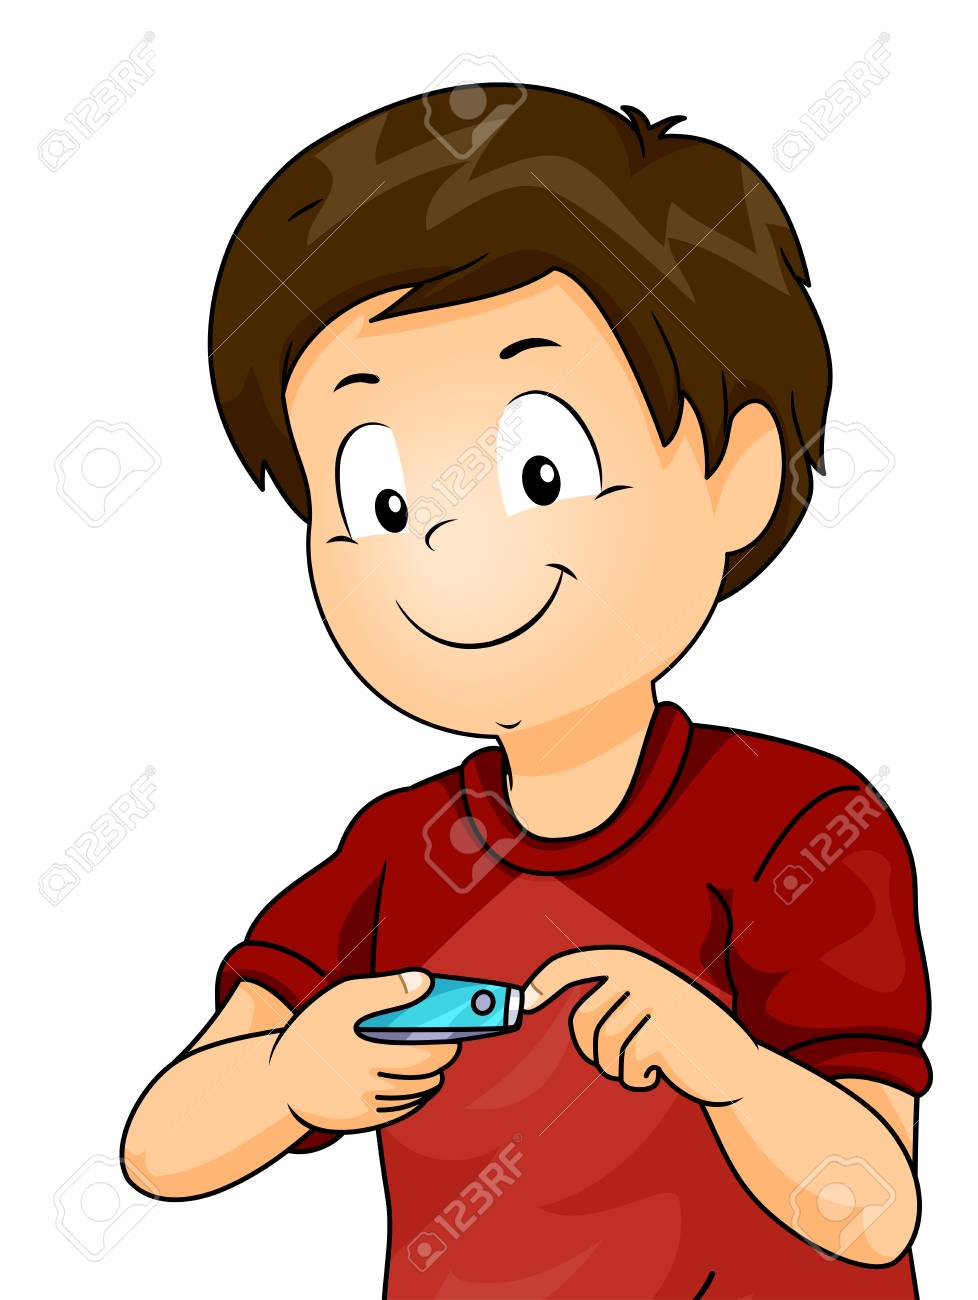 Illustration Of A Kid Boy Using Nail Cutter Clipping His Fingernails